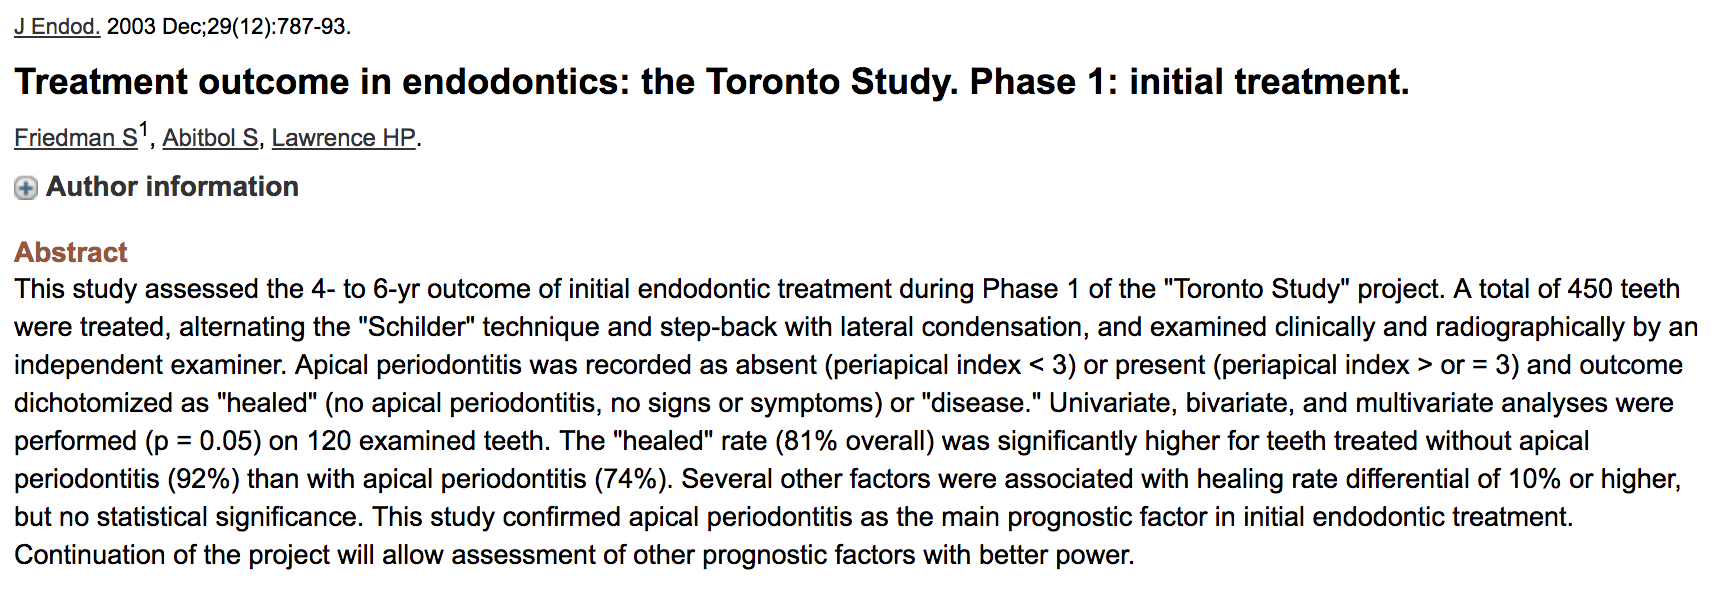 Dr. Sarah Abitbol - Treatment outcome in endodontics: the Toronto Study. Phase 1: initial treatment